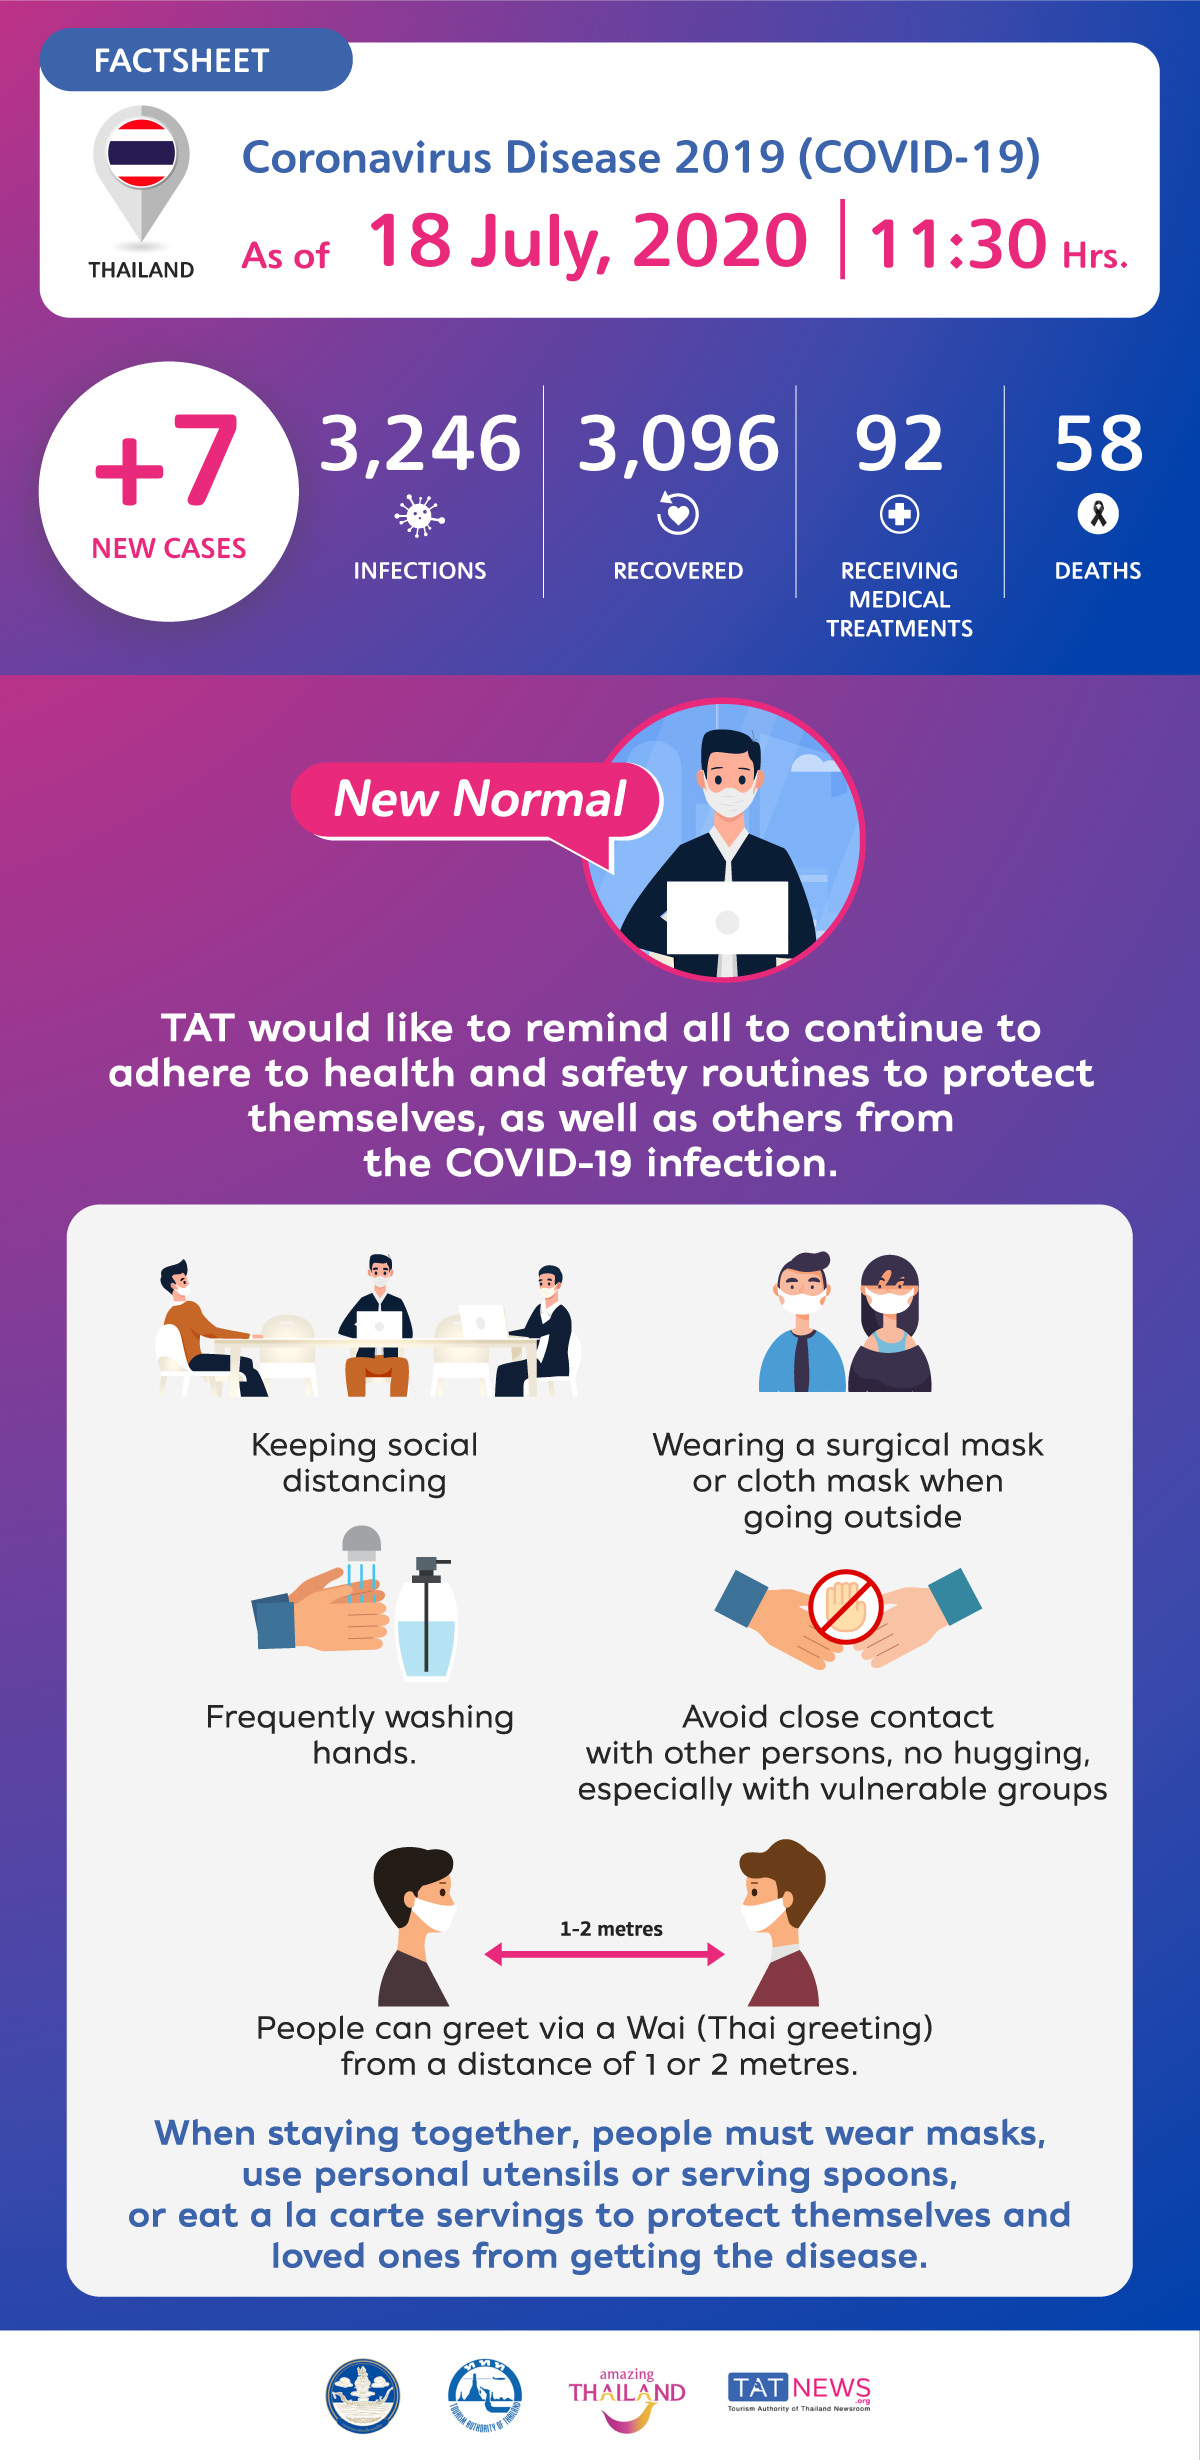 Coronavirus Disease 2019 (COVID-19) situation in Thailand as of 18 July 2020, 11.30 Hrs.